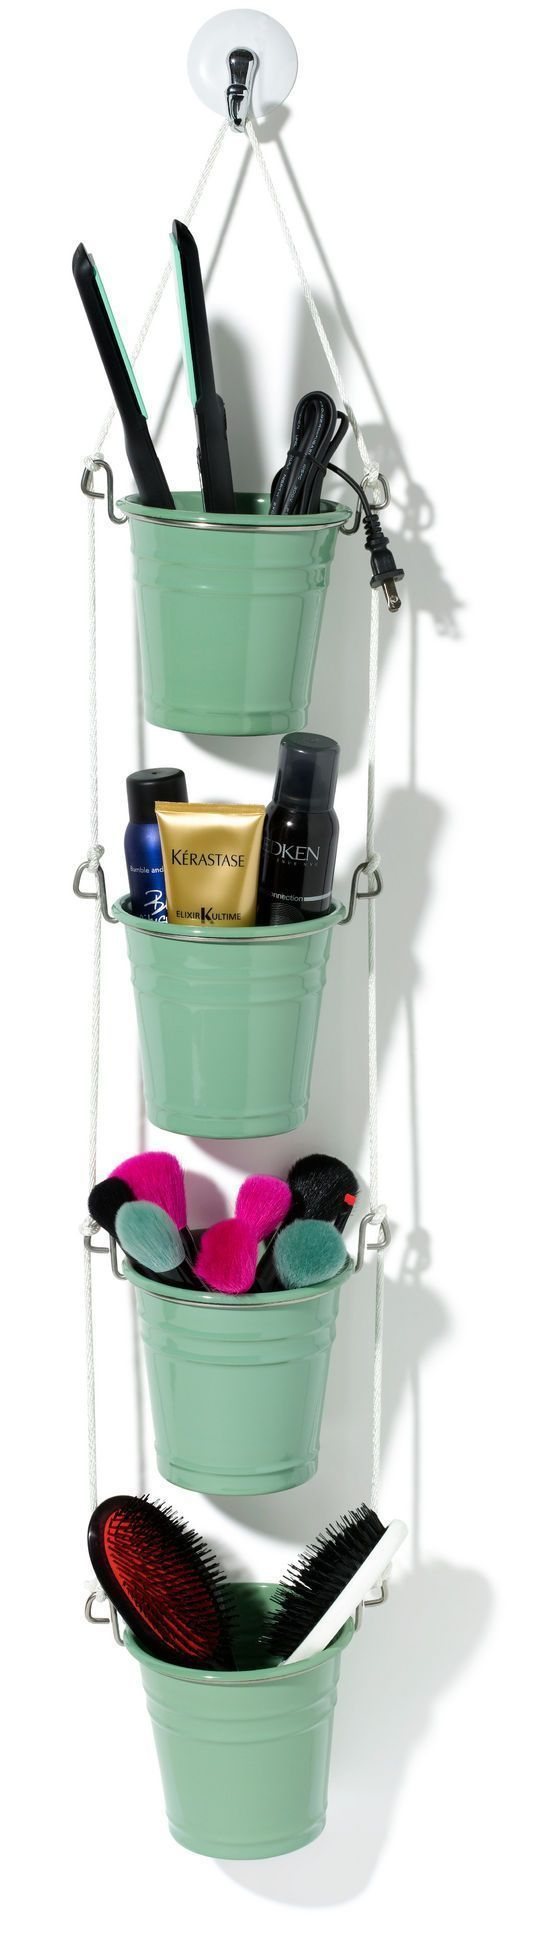 8 Clever Ways to Organize with Ikea • A round-up full of ideas, projects and tutorials! Including, from 'glamour', this diy makeup storage unit made from Ikea Fintorp flatware caddies. #diymakeup